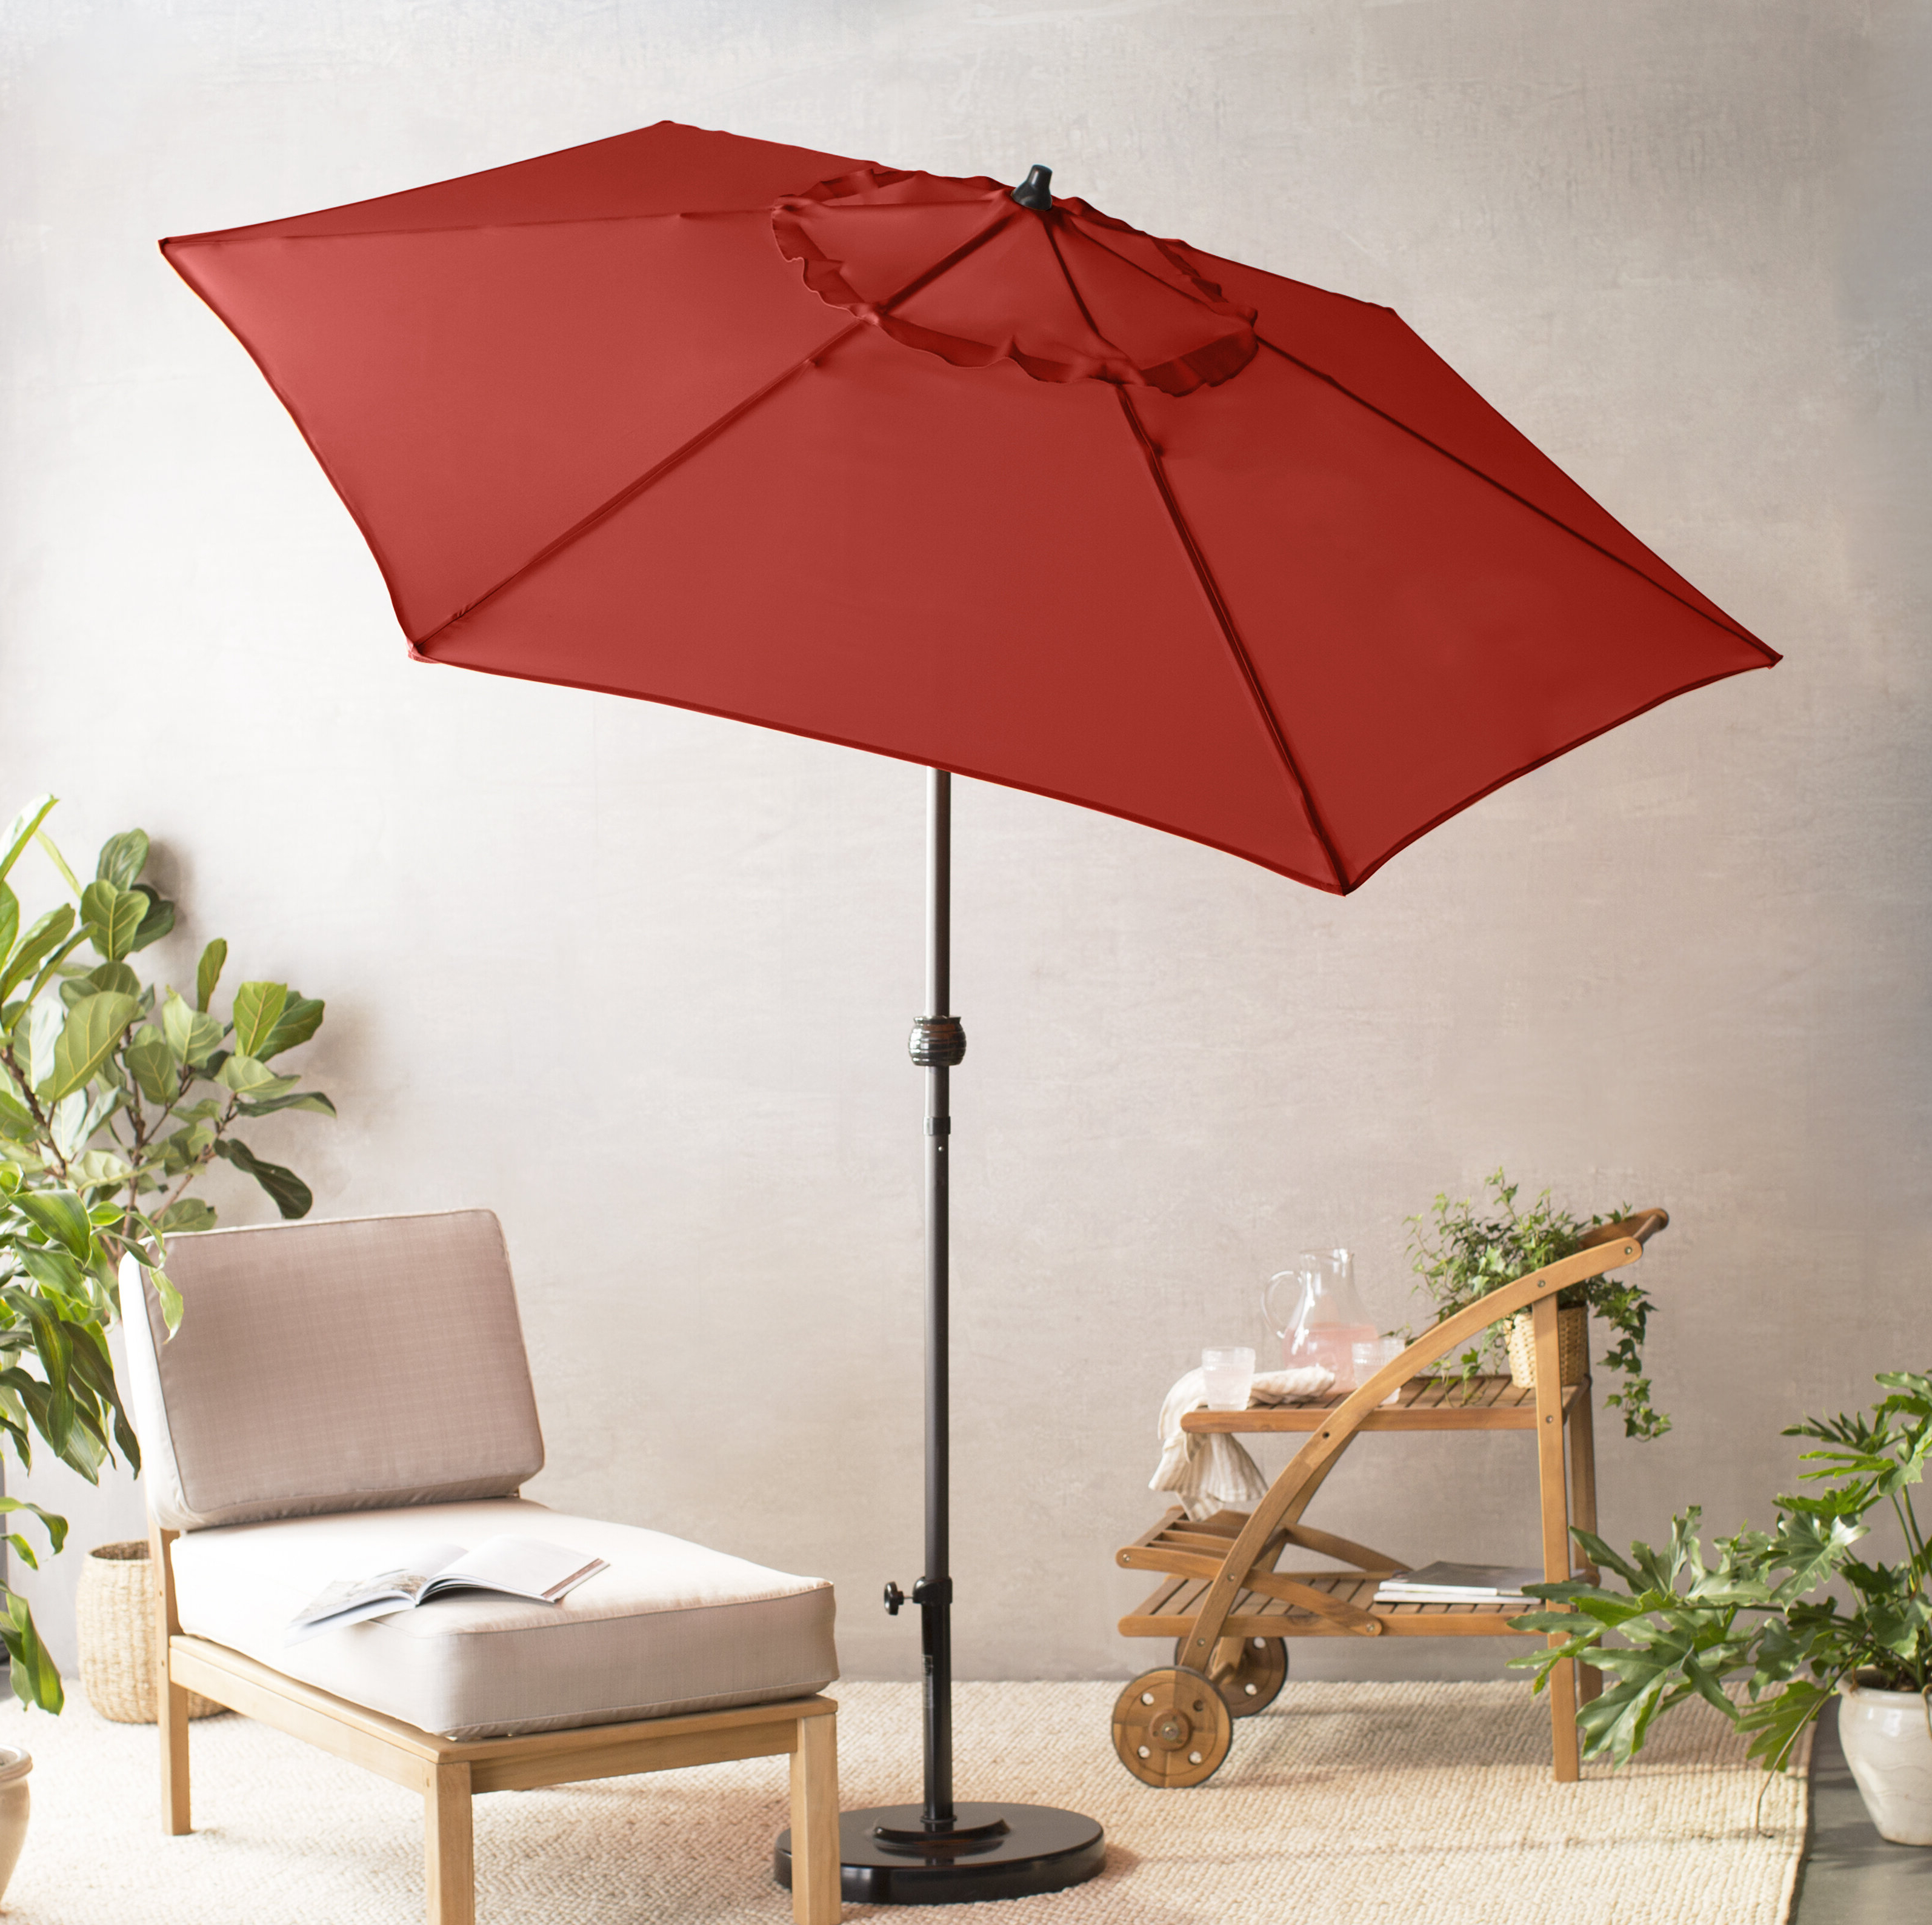 Kearney 9' Market Umbrella With Current Kearney Market Umbrellas (View 2 of 20)